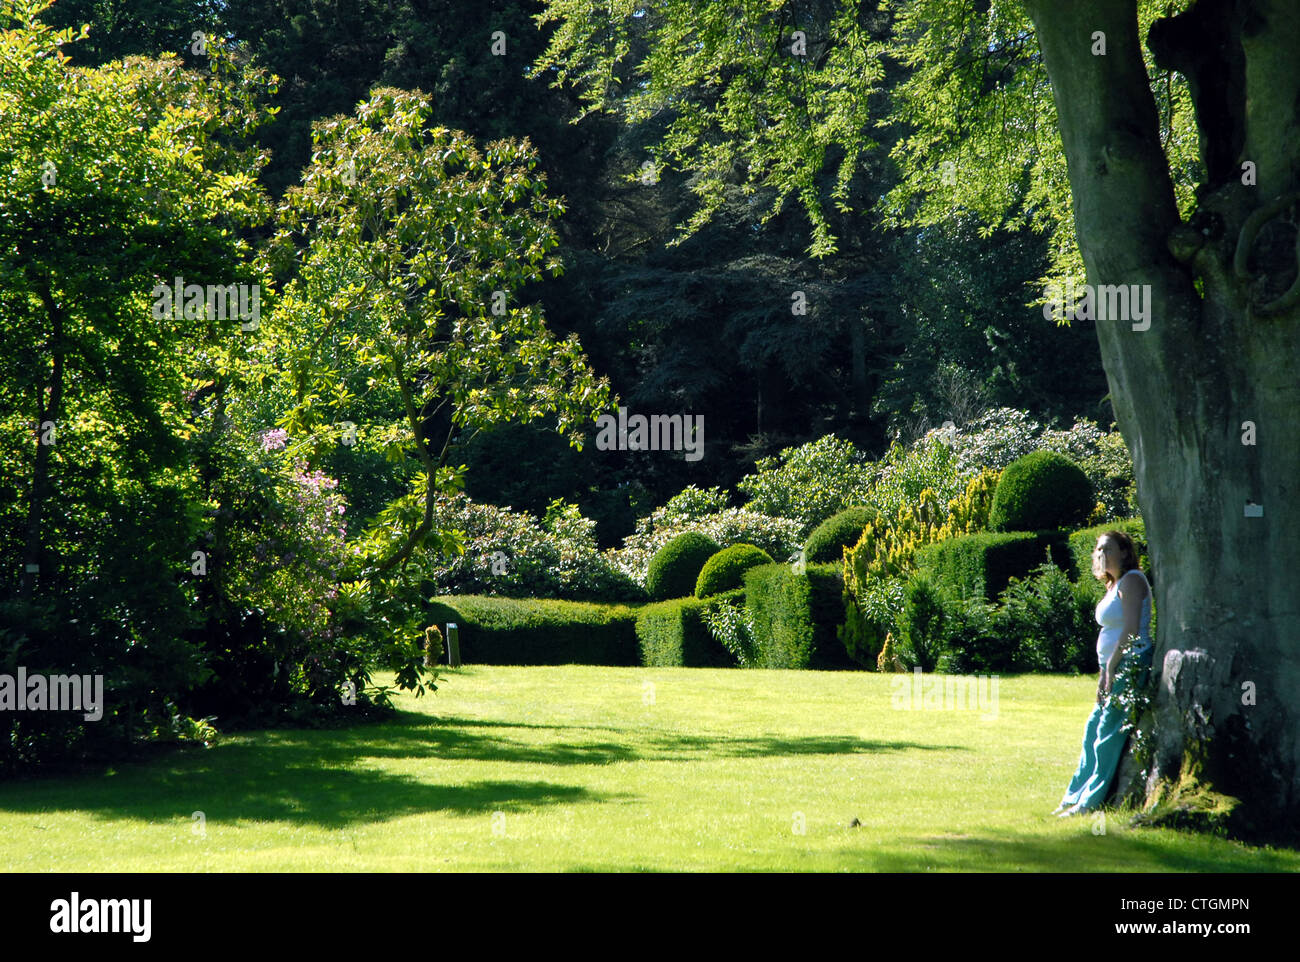 A woman enjoys the beautifull surroundings at Hergest Croft Gardens in Kington, Herefordshire. - Stock Image